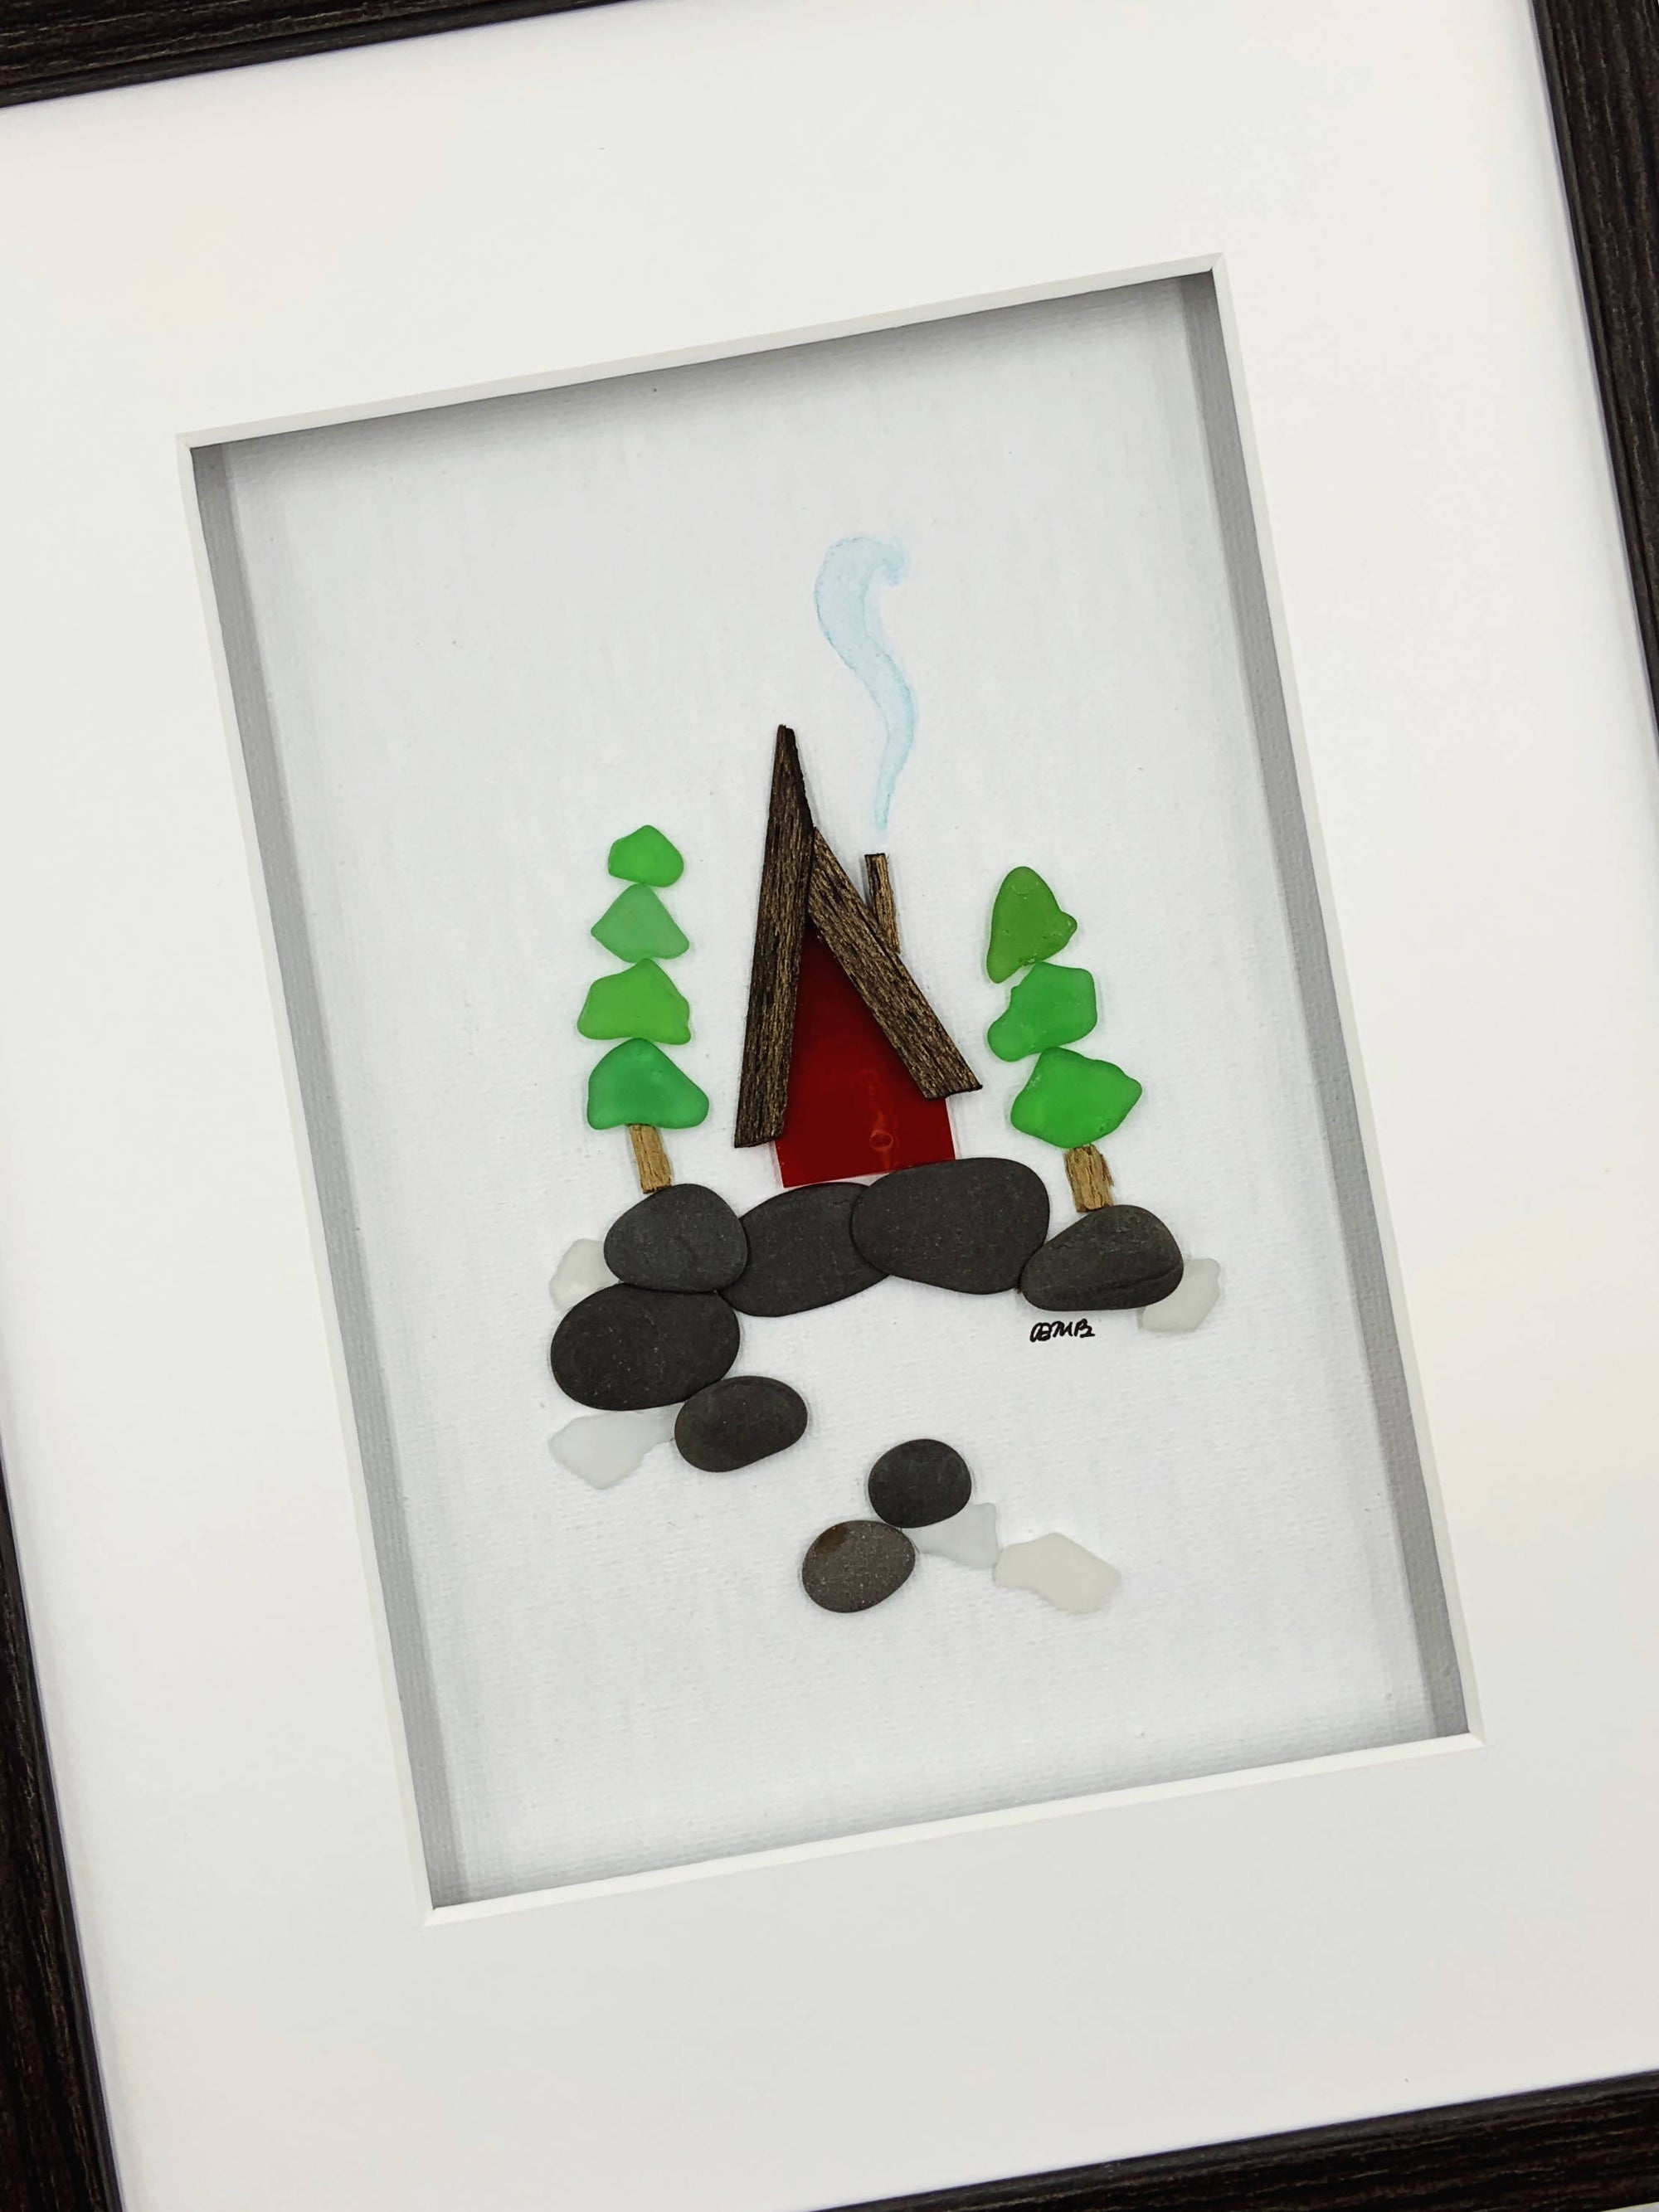 Pebble art / Sea glass art, 8 by 10, Chalet